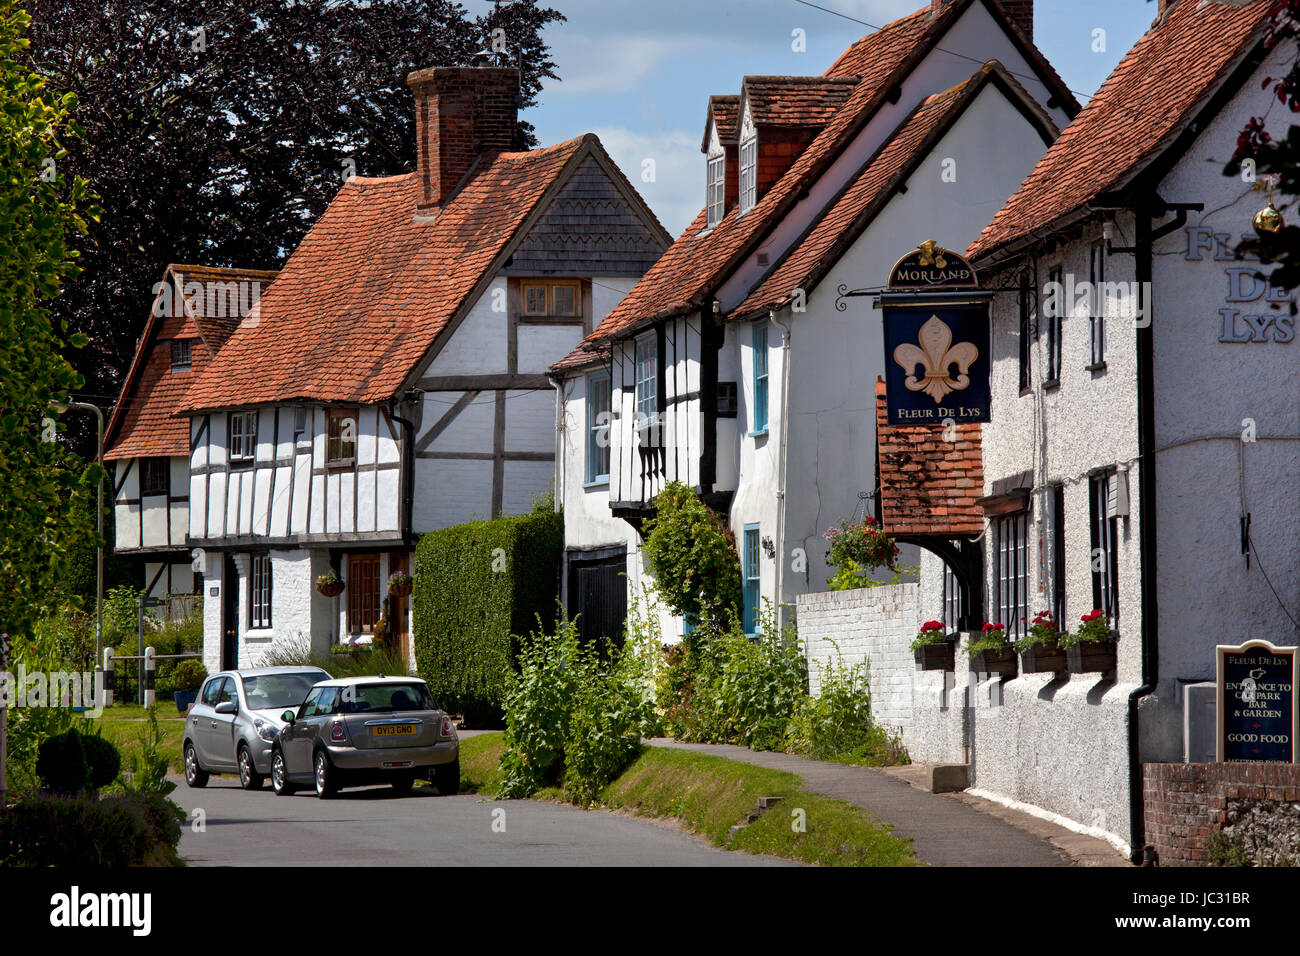 Village high street scene in East Hagbourne,Oxfordshire,England - Stock Image